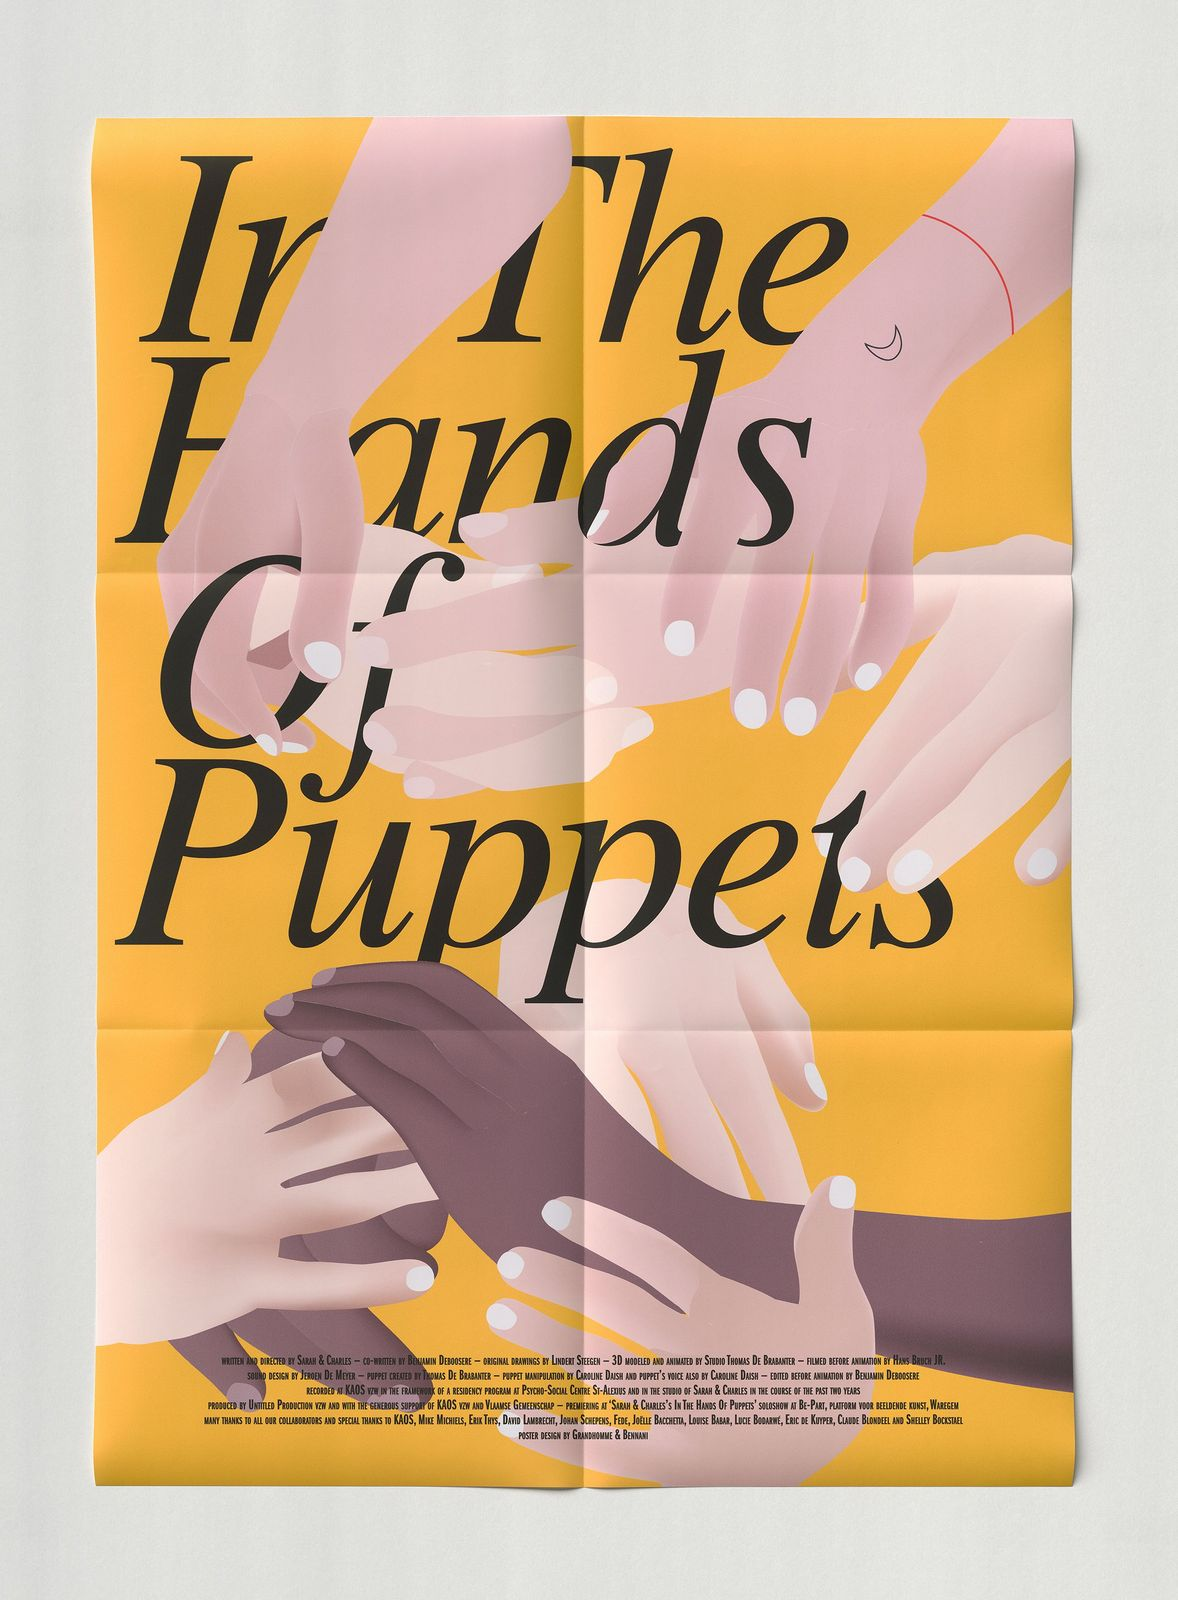 Movie poster: In the hands of puppets, 2019